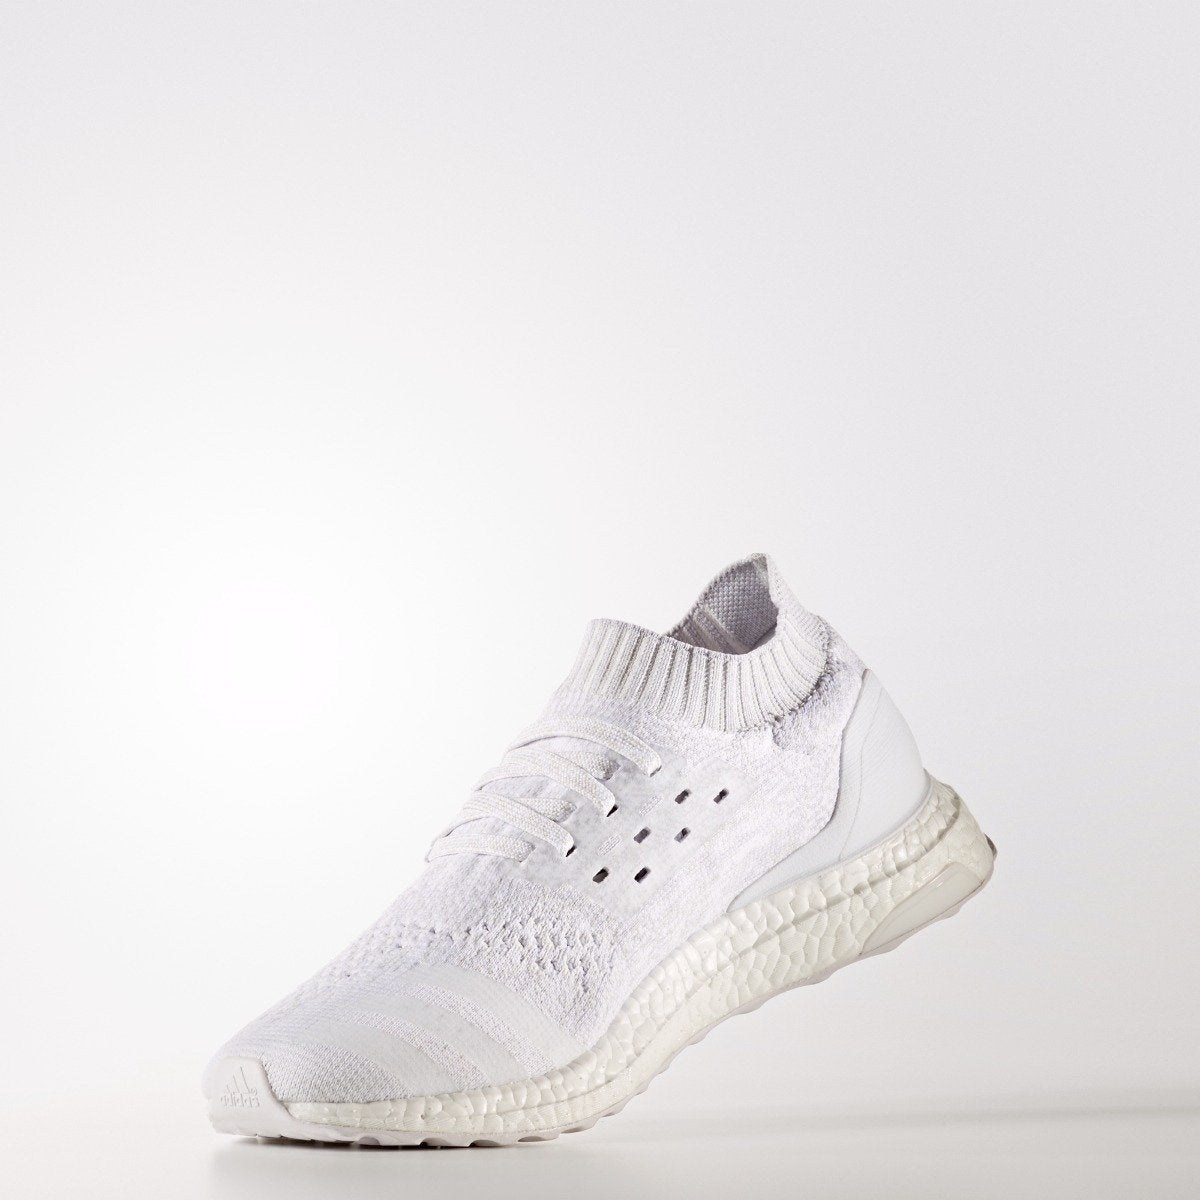 42b90a2c4eaa3 Men s adidas Running UltraBOOST Uncaged Shoes White BY2549